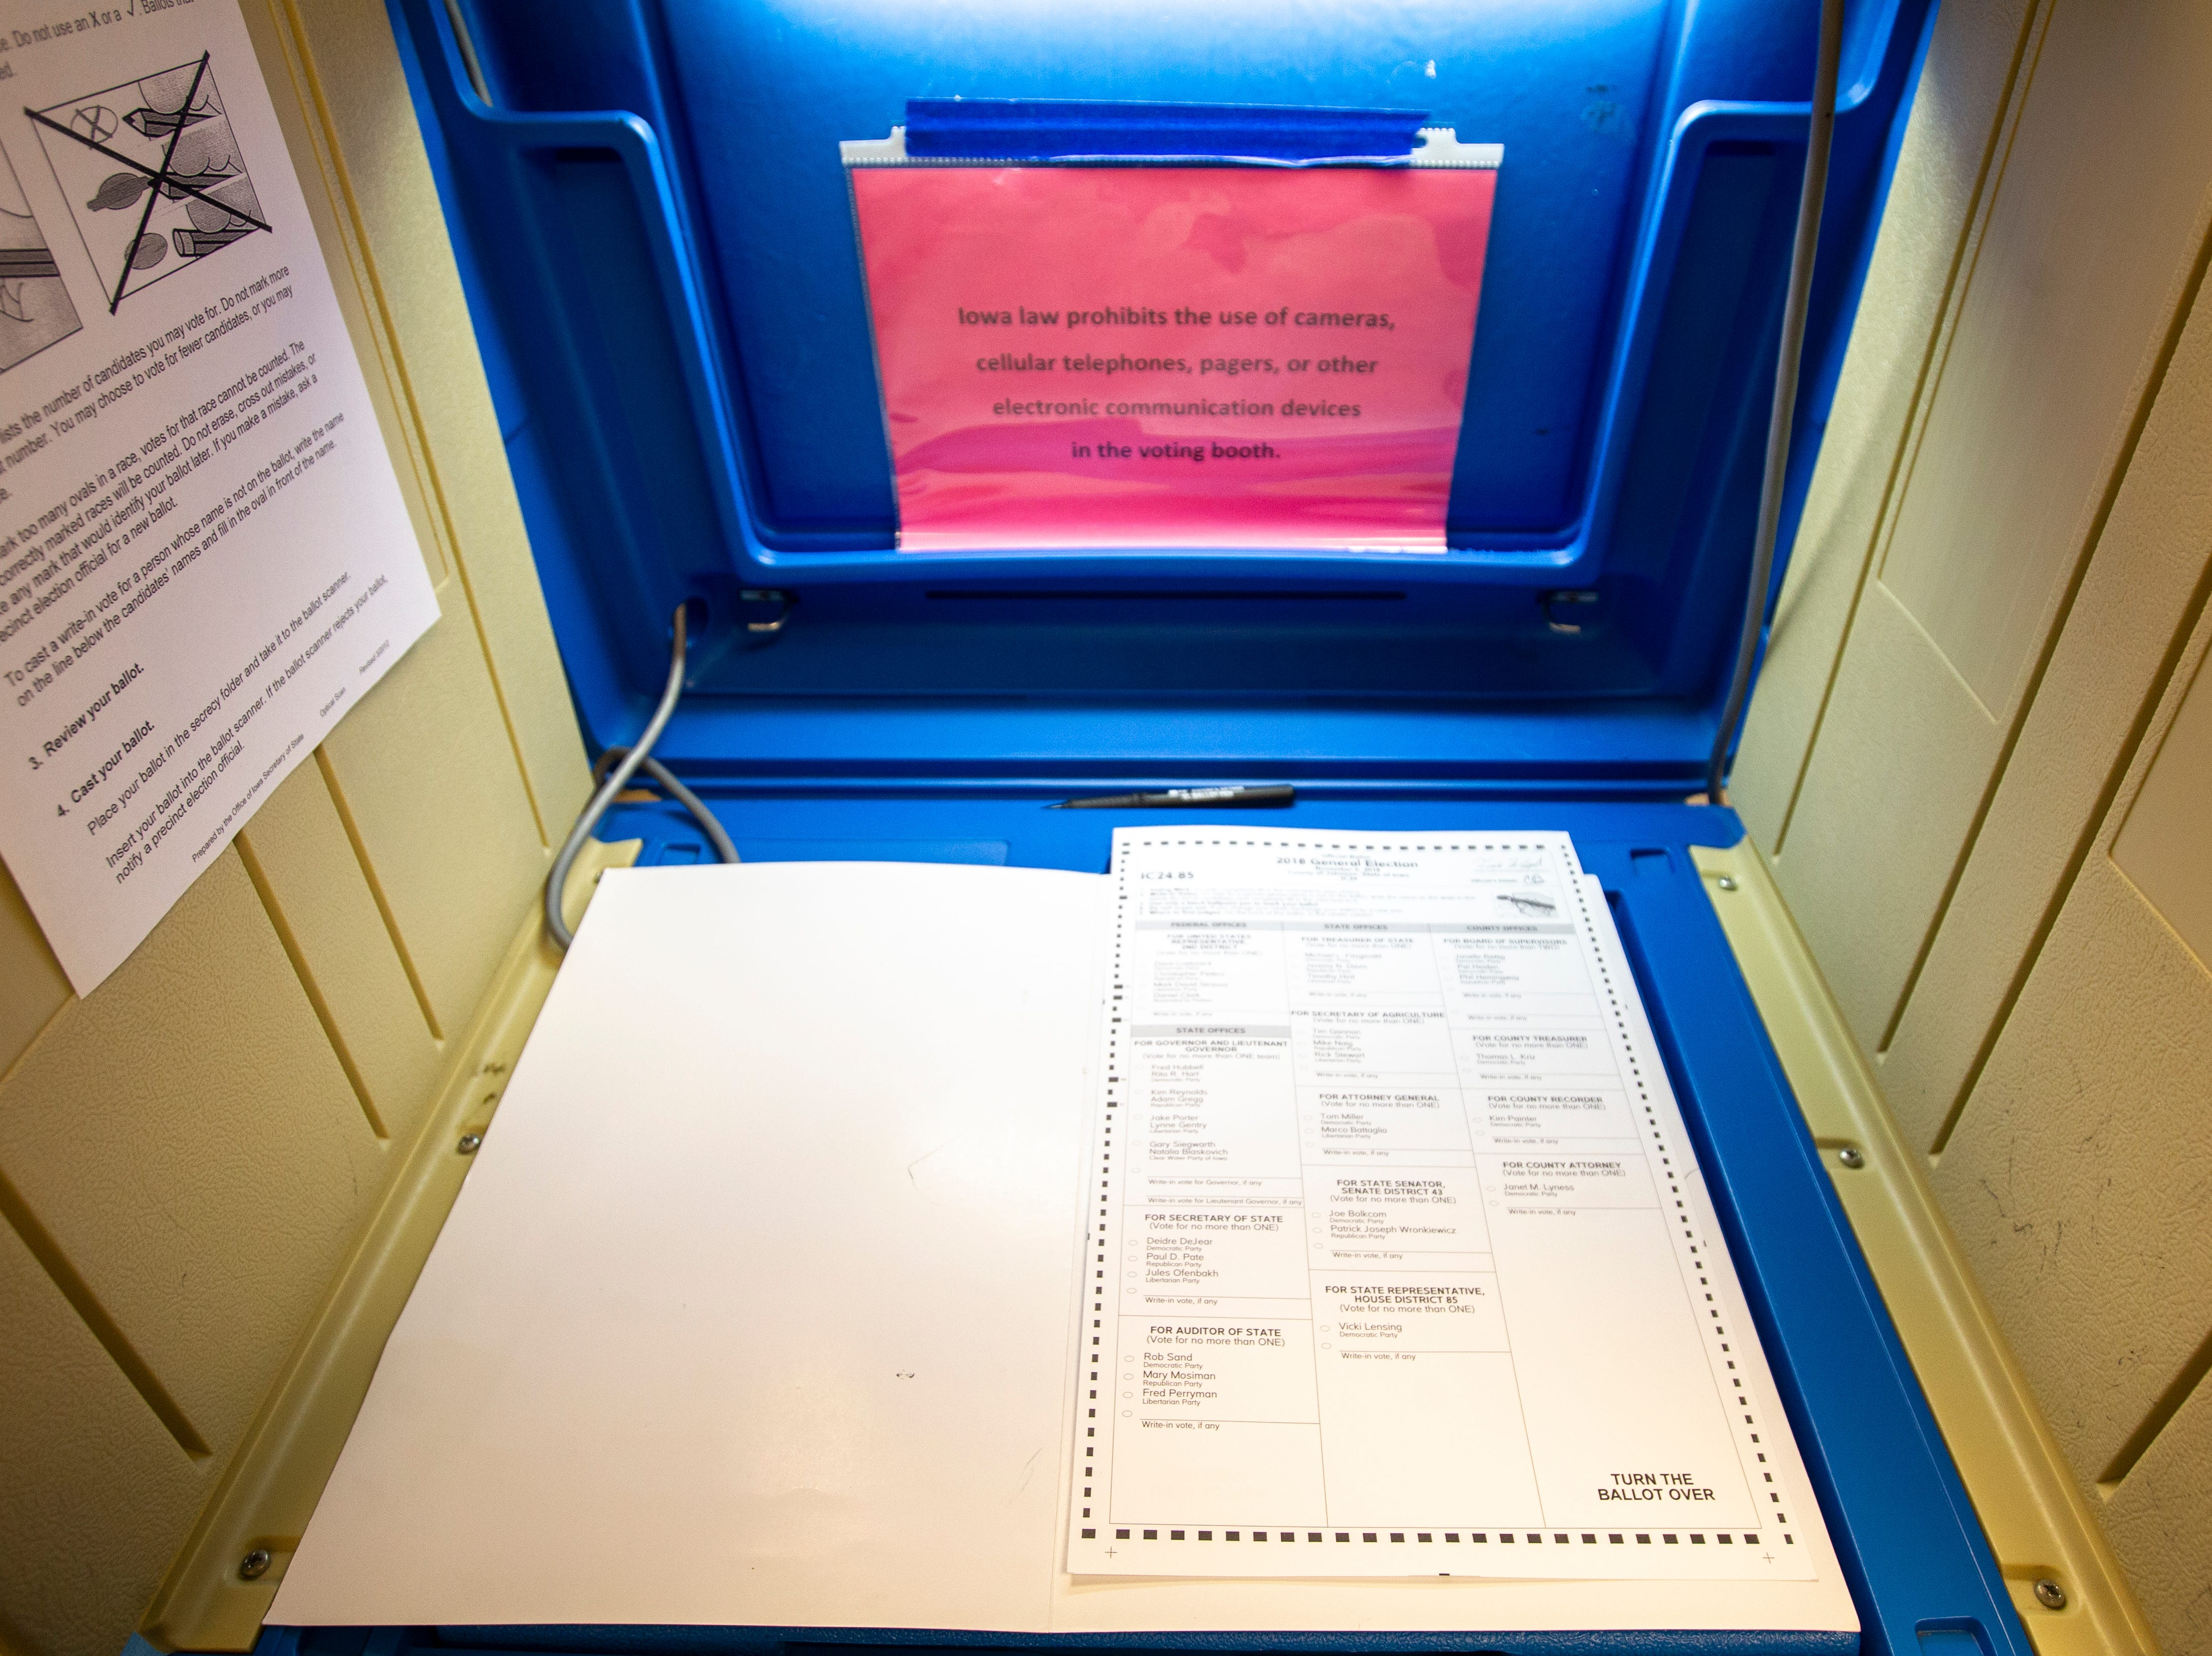 A ballot is seen on Tuesday, Nov. 6, 2018, at St. Patrick's Church in Iowa City.